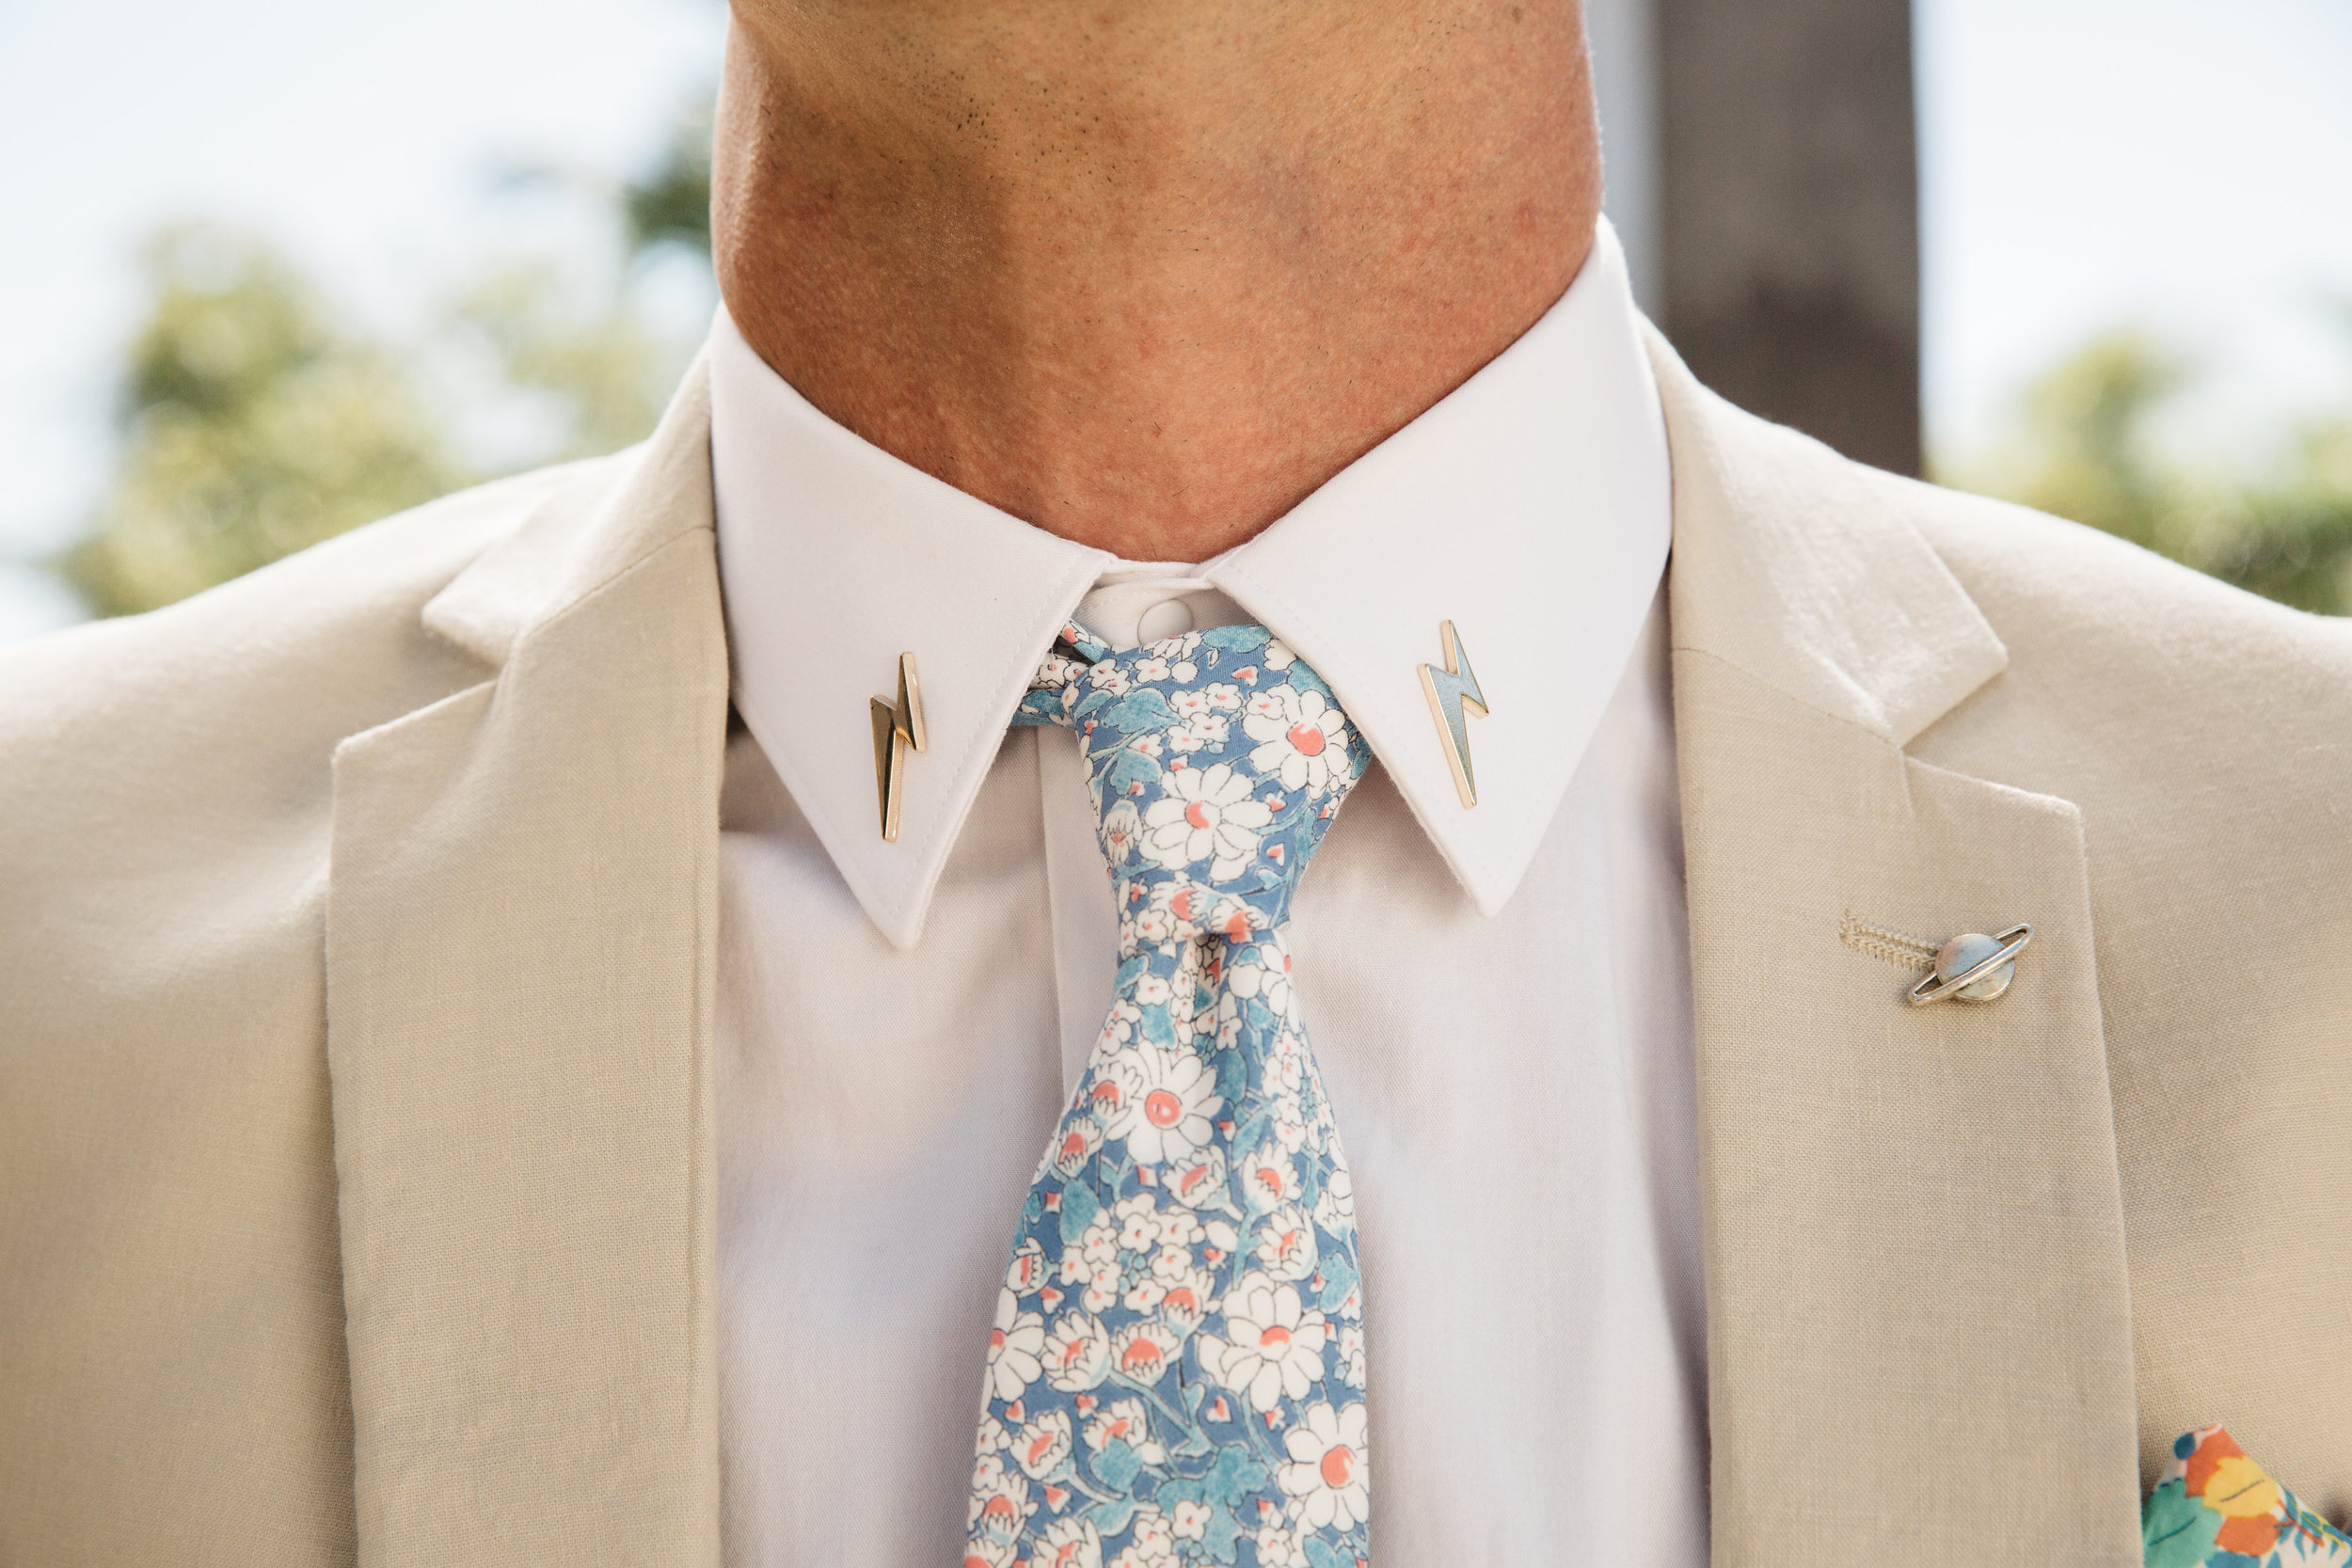 Jesse is one of our all time favorites with his lightning bolt collar pins, his colorful accents on his tie and pocket square, to his funky shoes and retro shades. His style pops!